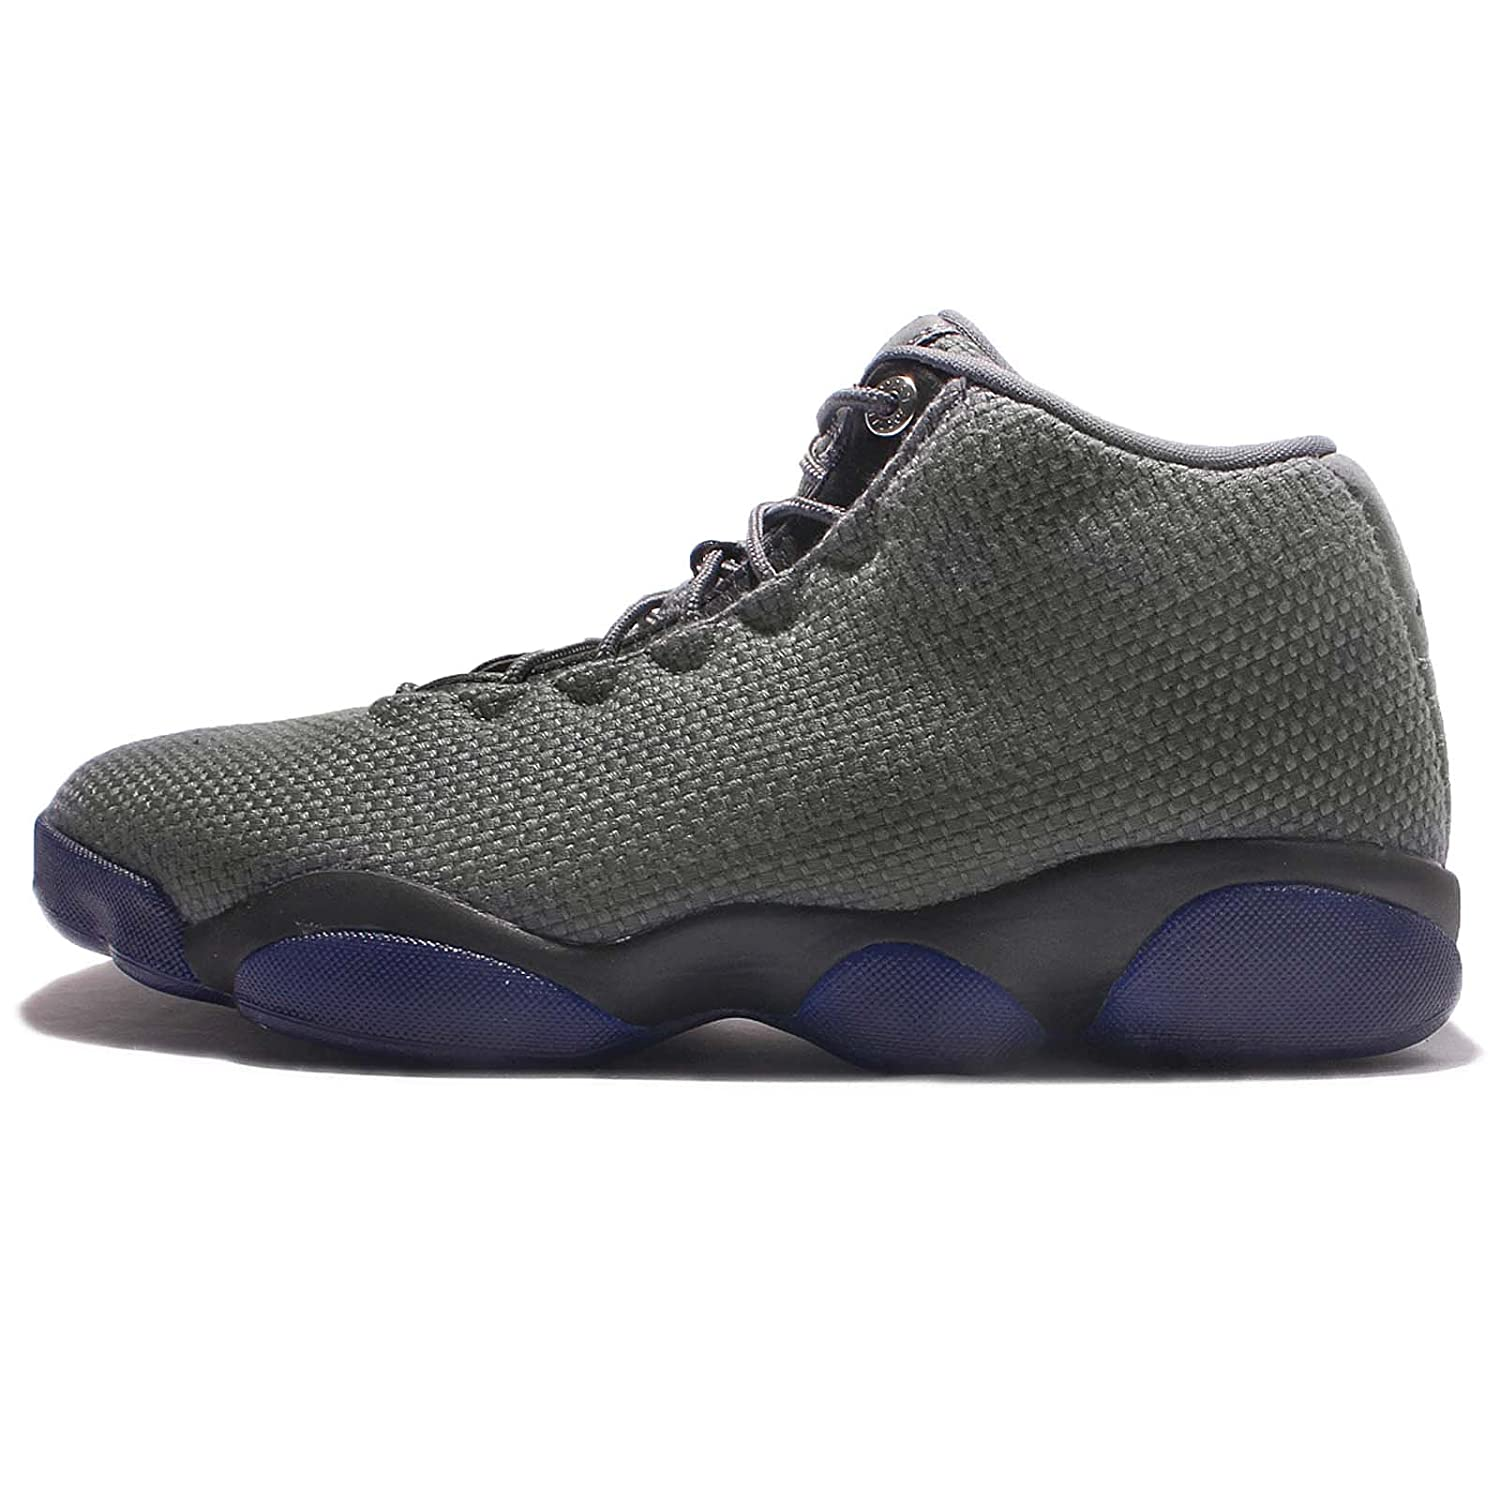 super popular 032e3 8e381 Amazon.com   Nike Jordan Horizon Low Men s Sneaker   Fashion Sneakers